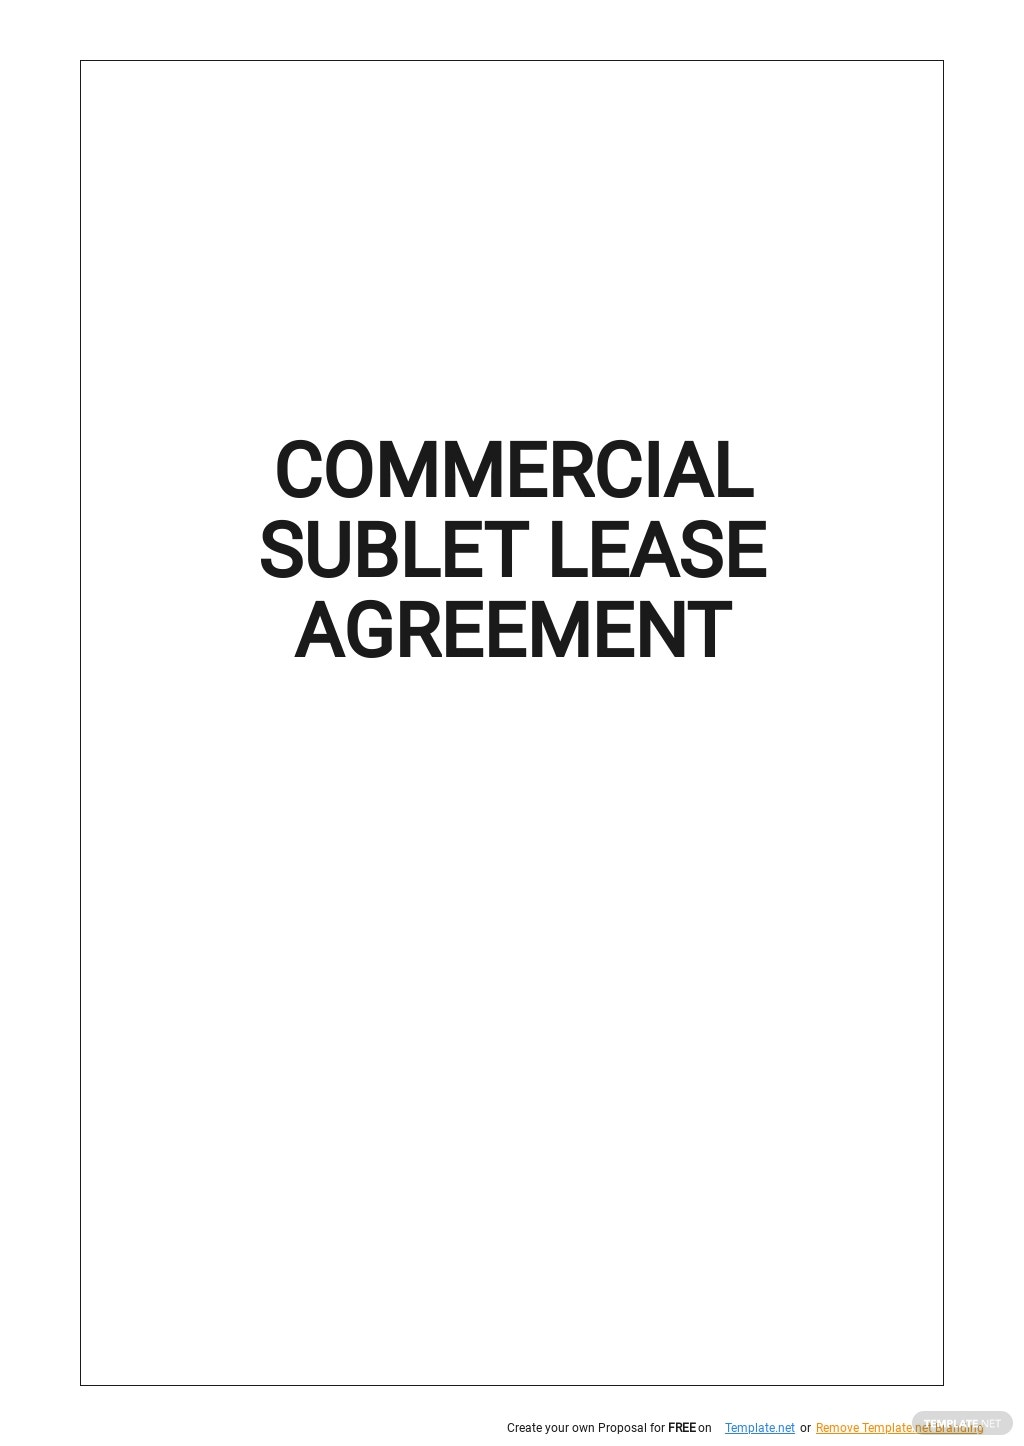 Commercial Sublet Lease Agreement Template.jpe